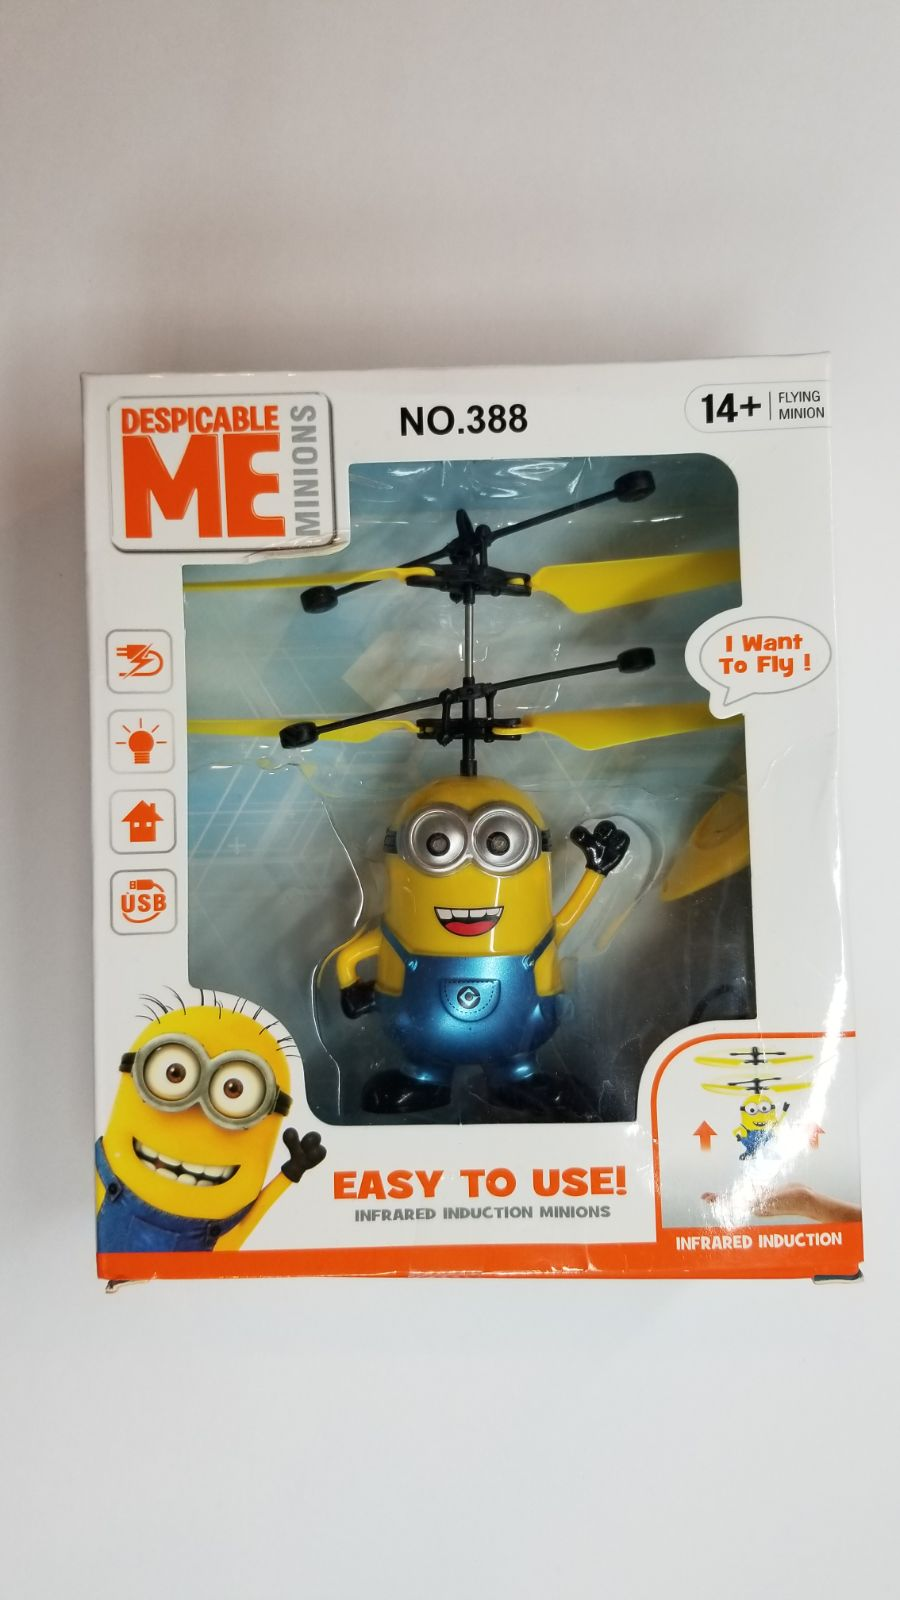 Despicable Me Flaying Minions